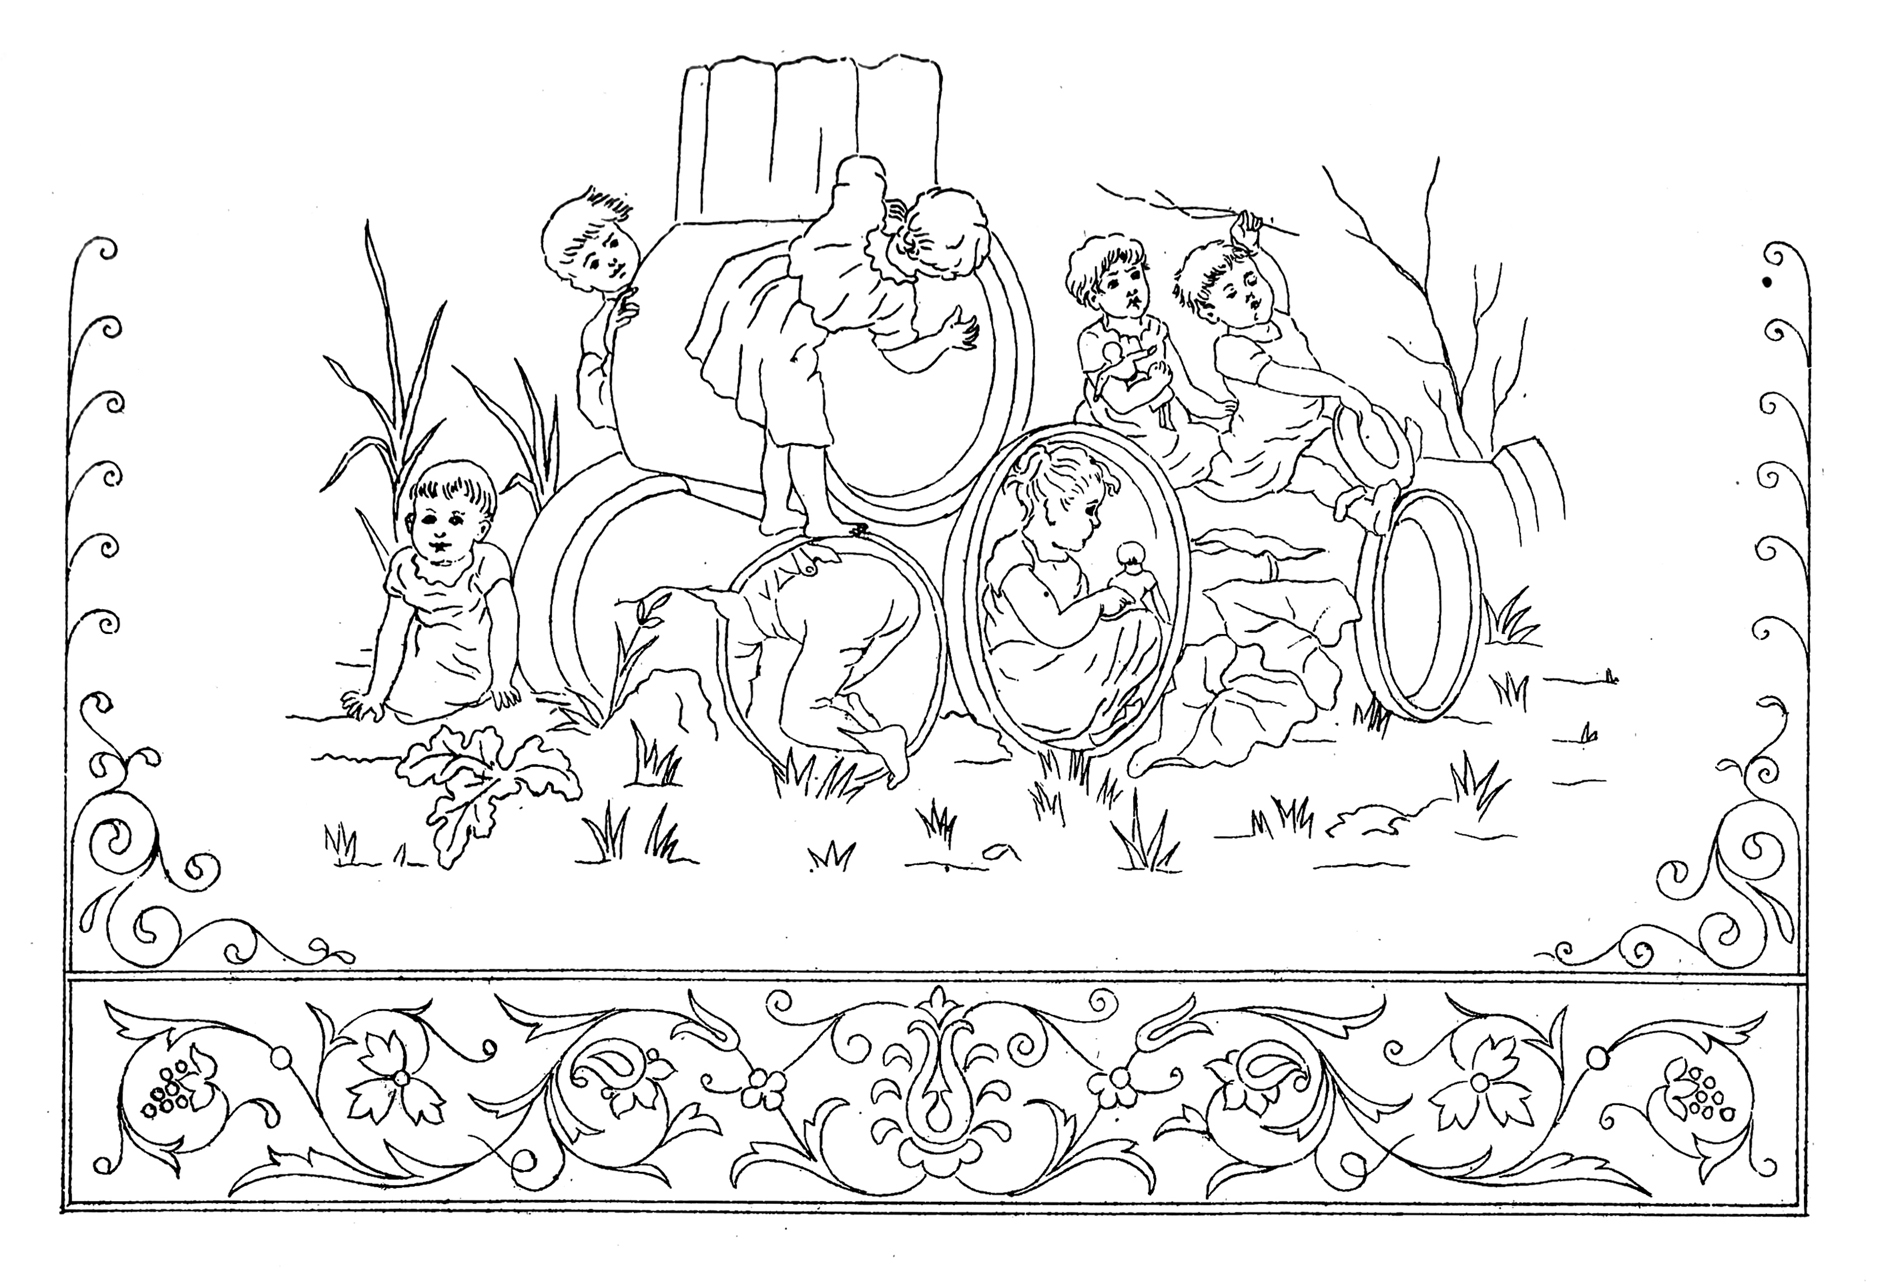 victorian colouring sheets victorian woman coloring pages free printable victorian victorian sheets colouring